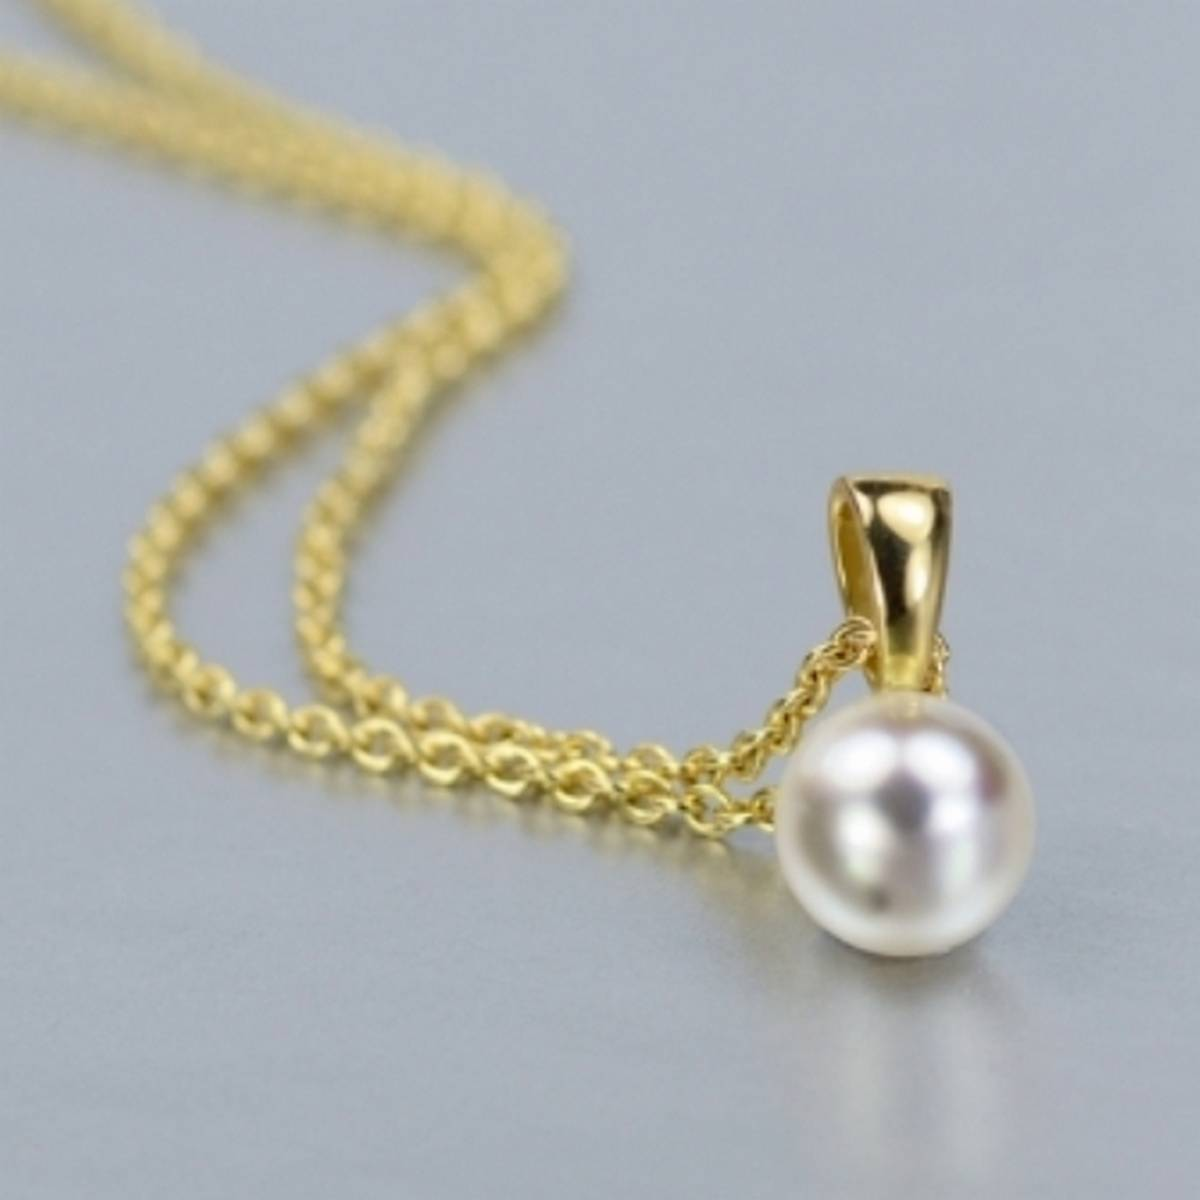 Silver/Golden Simple Single Pearl (Moti) Pendant Necklace for Girls/Women